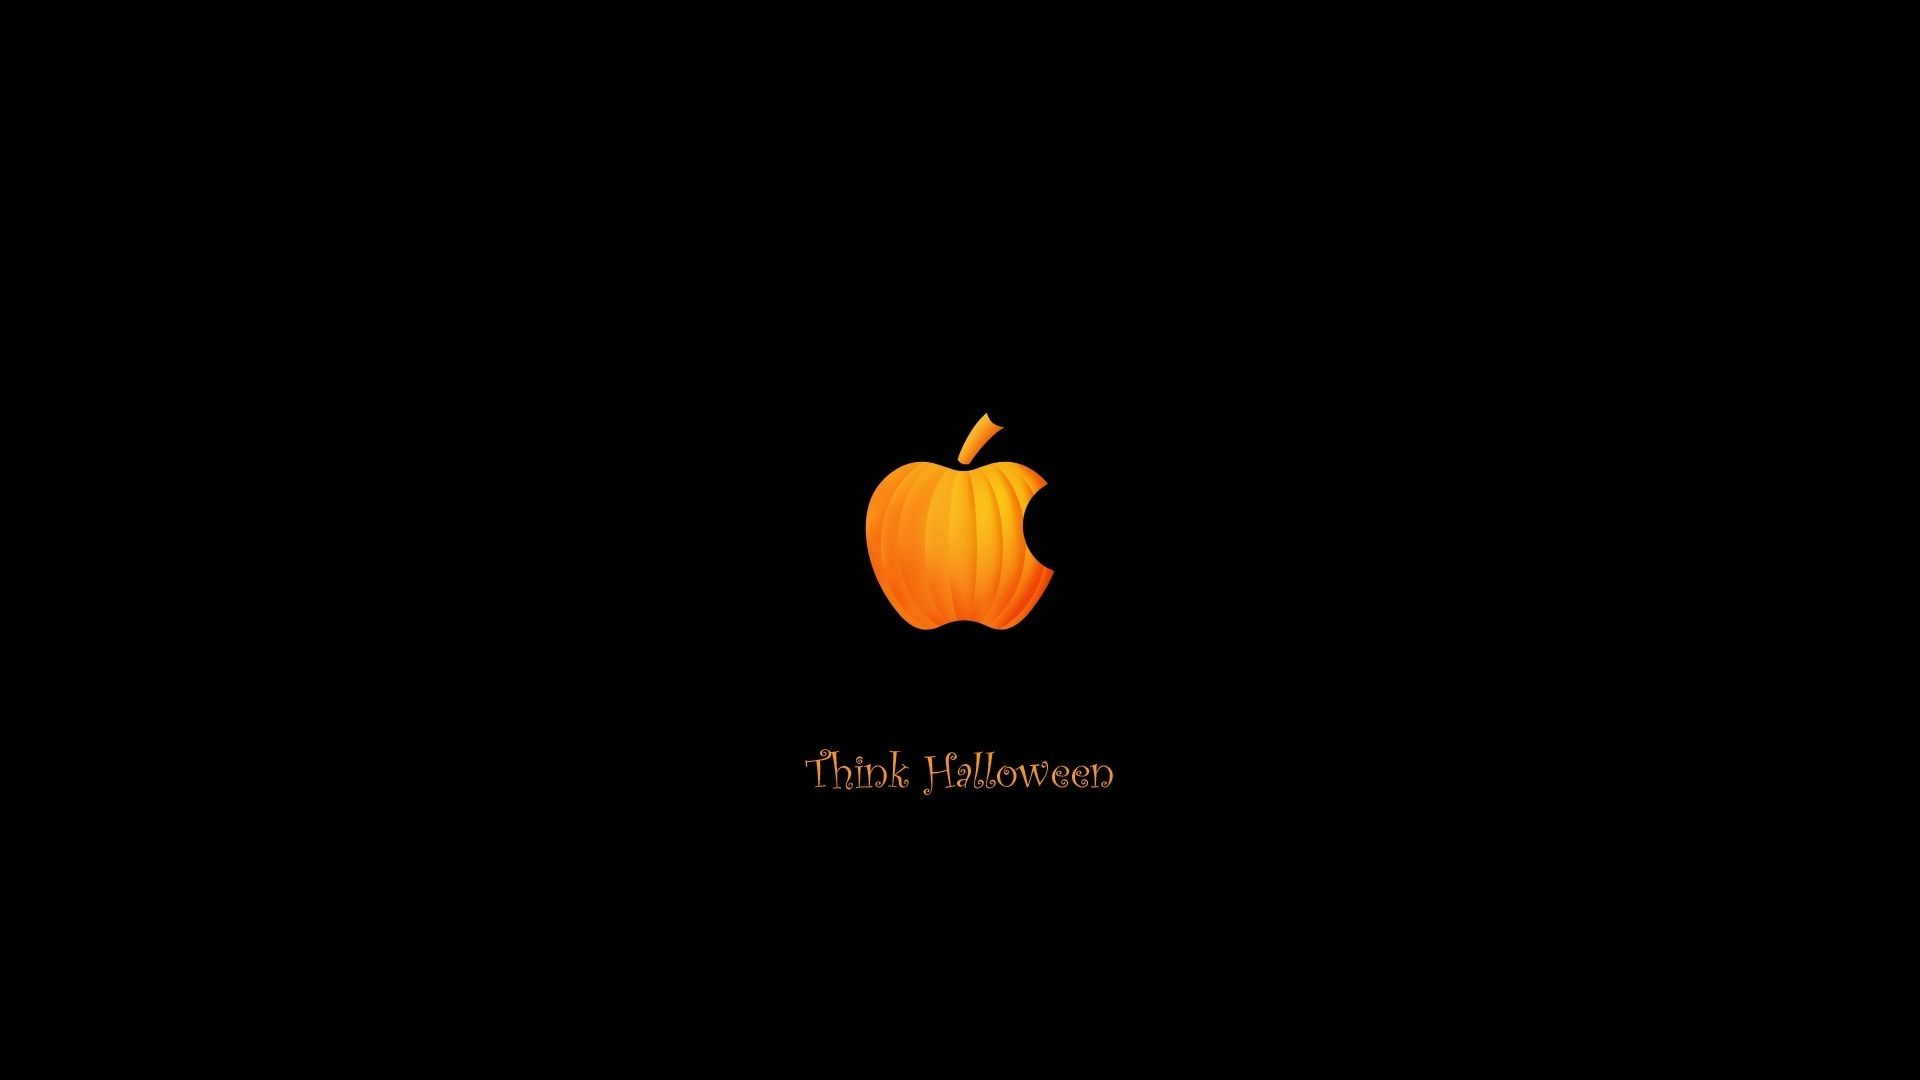 Image Result For Macbook Desktop Backgrounds Halloween Macbook